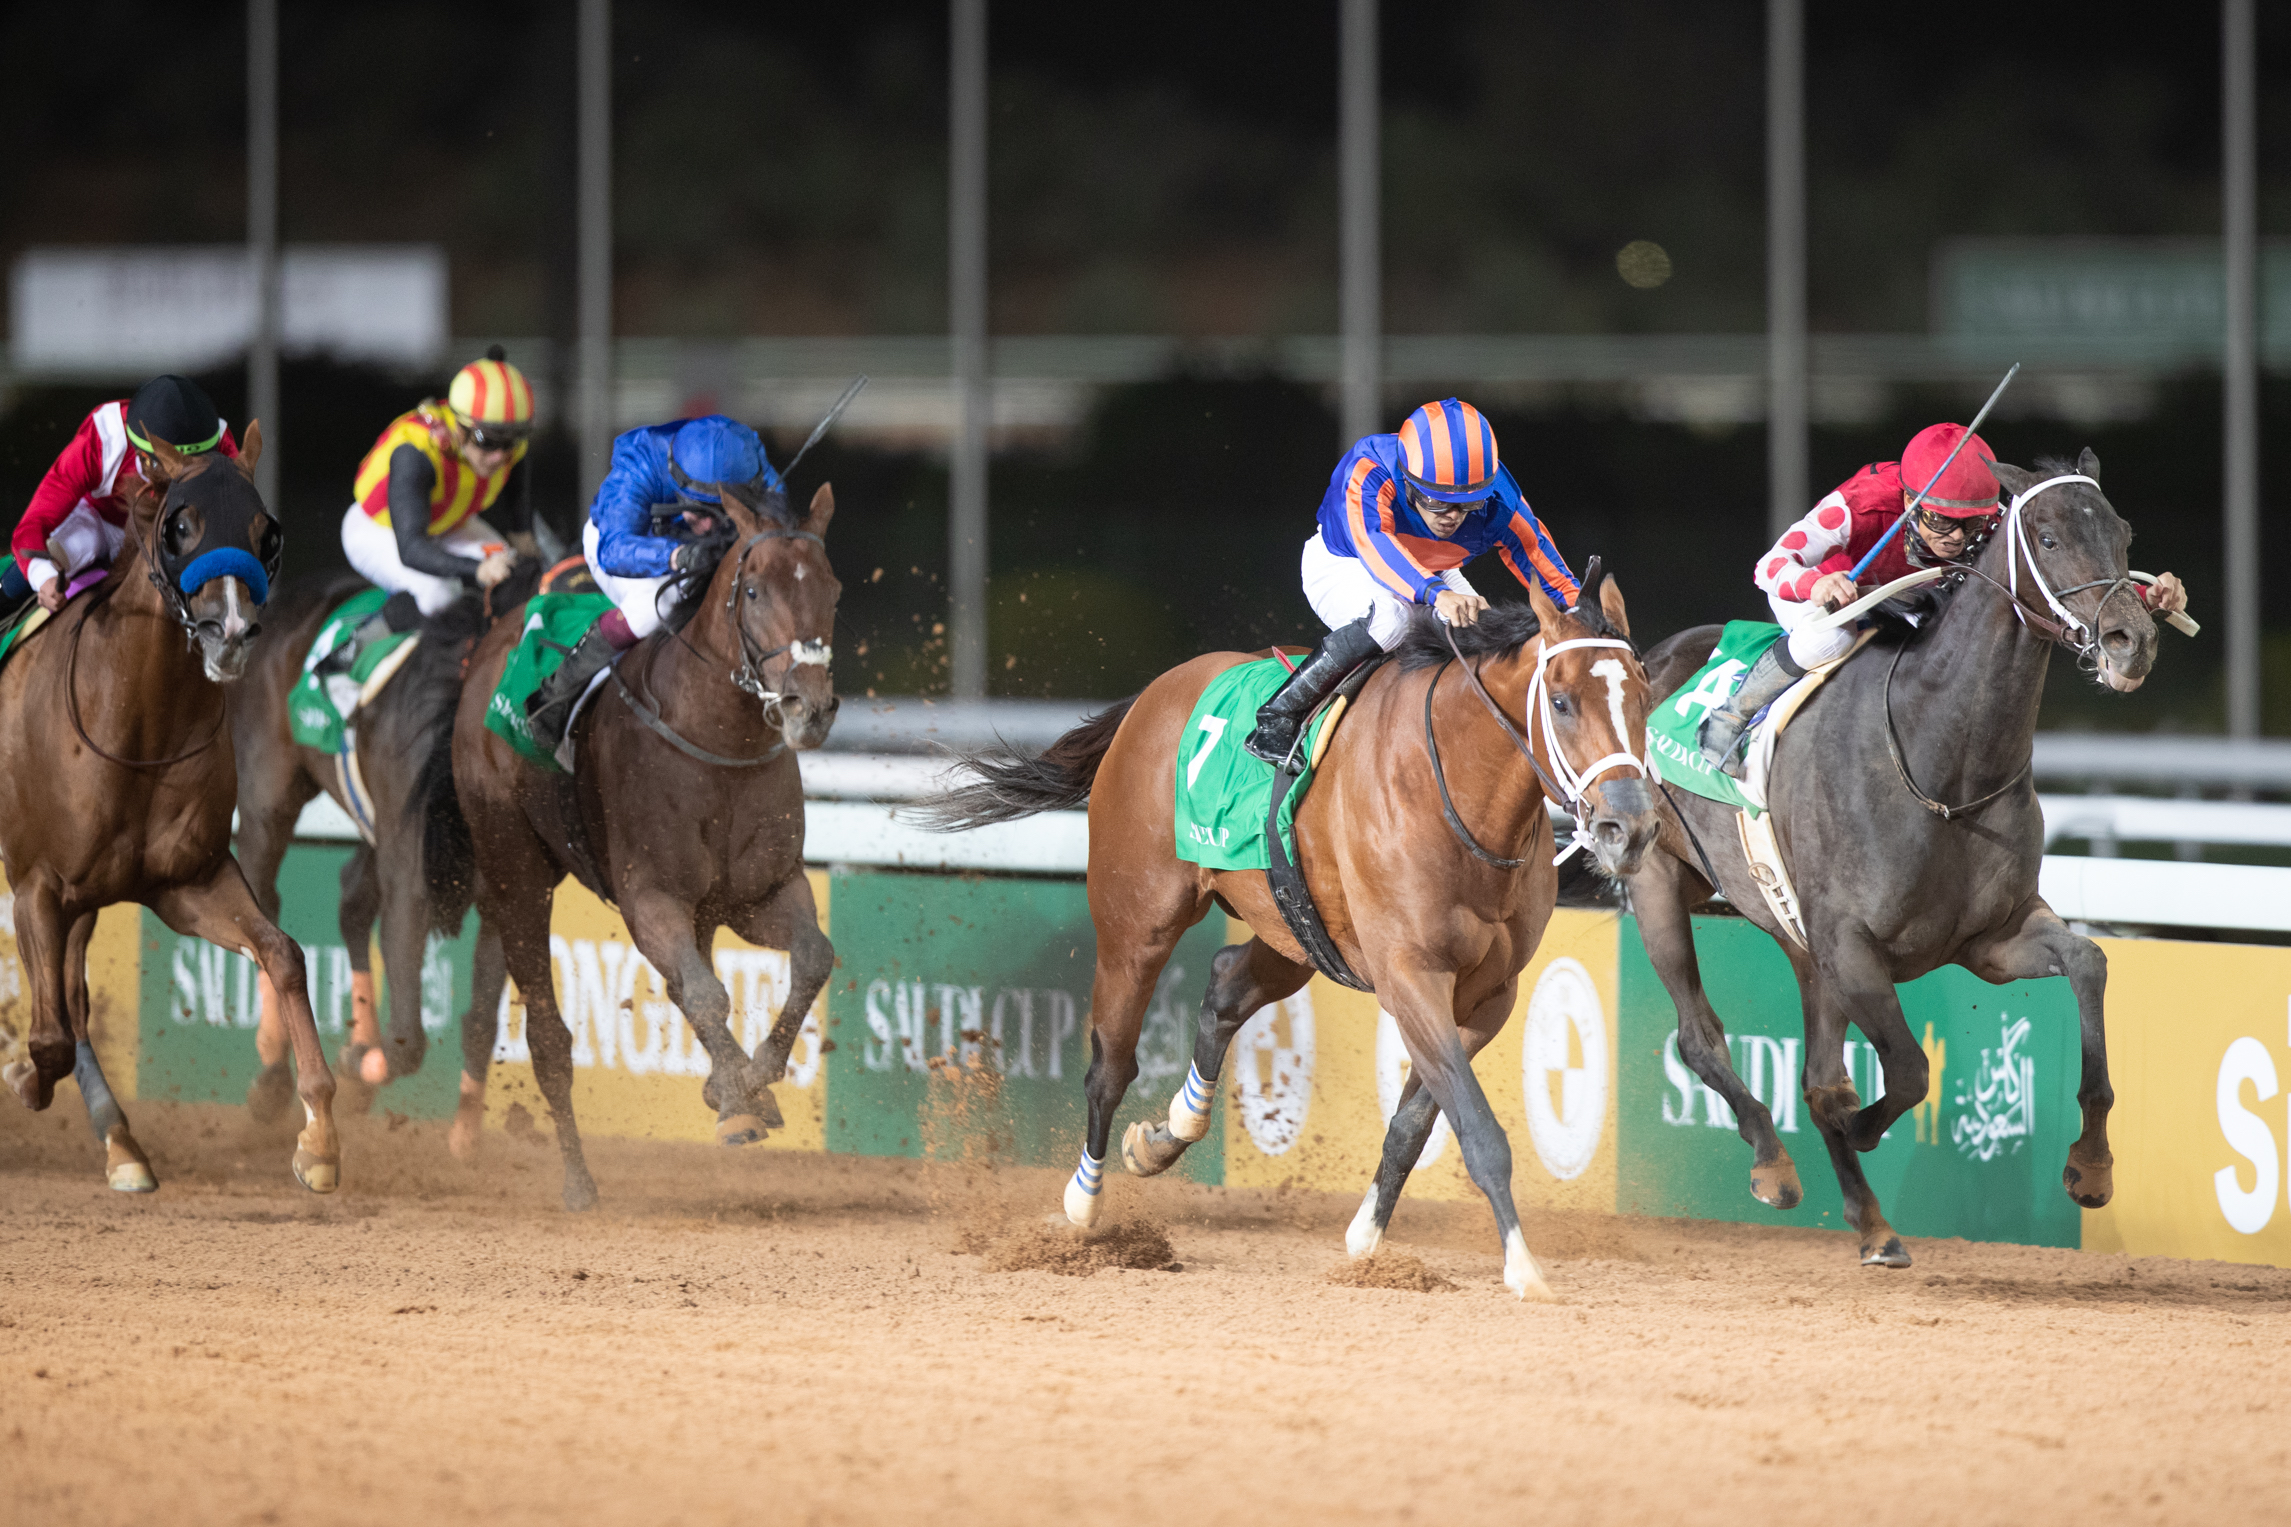 Maximum Security (second right) wins from Midnight Bisou, with Benbatl (blue) third ahead of Mucho Gusto (left) fourth and Gold Dream, who finished sixth. Photo: Jockey Club of Saudi Arabia